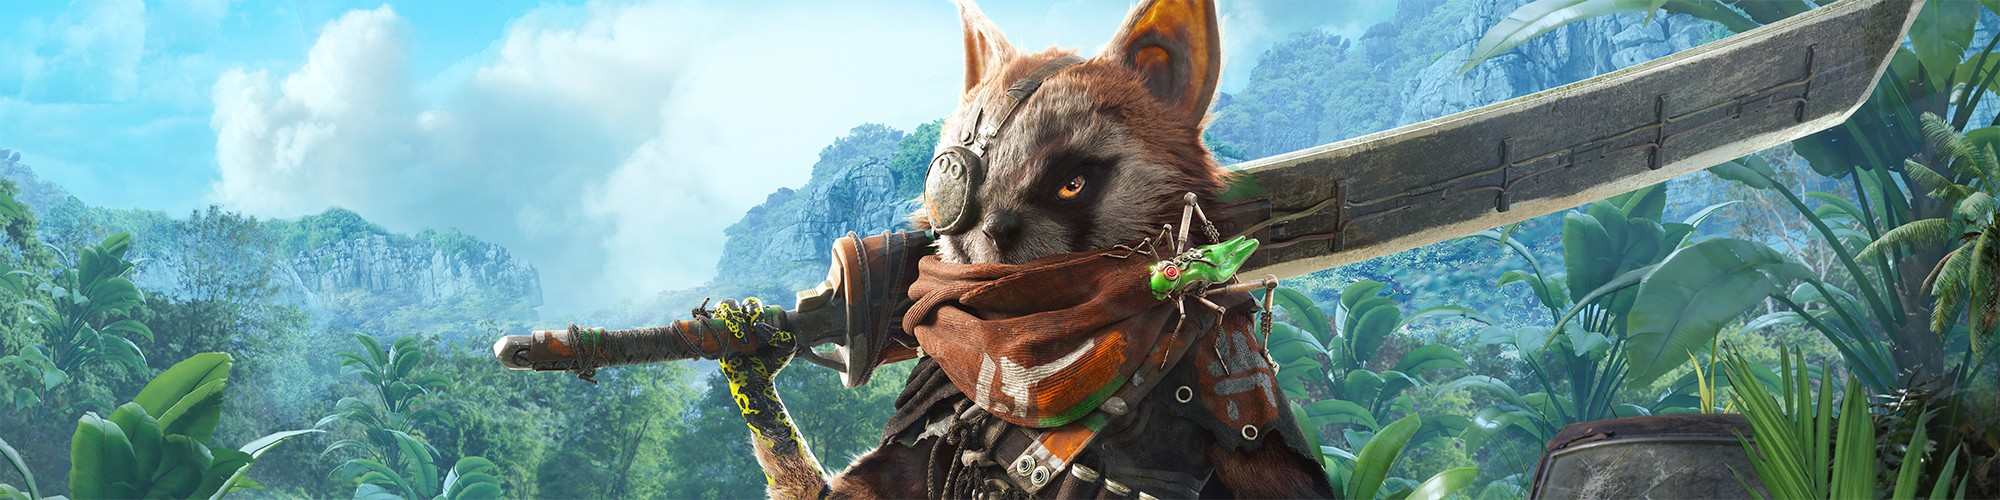 BIOMUTANT technical specifications for PCs